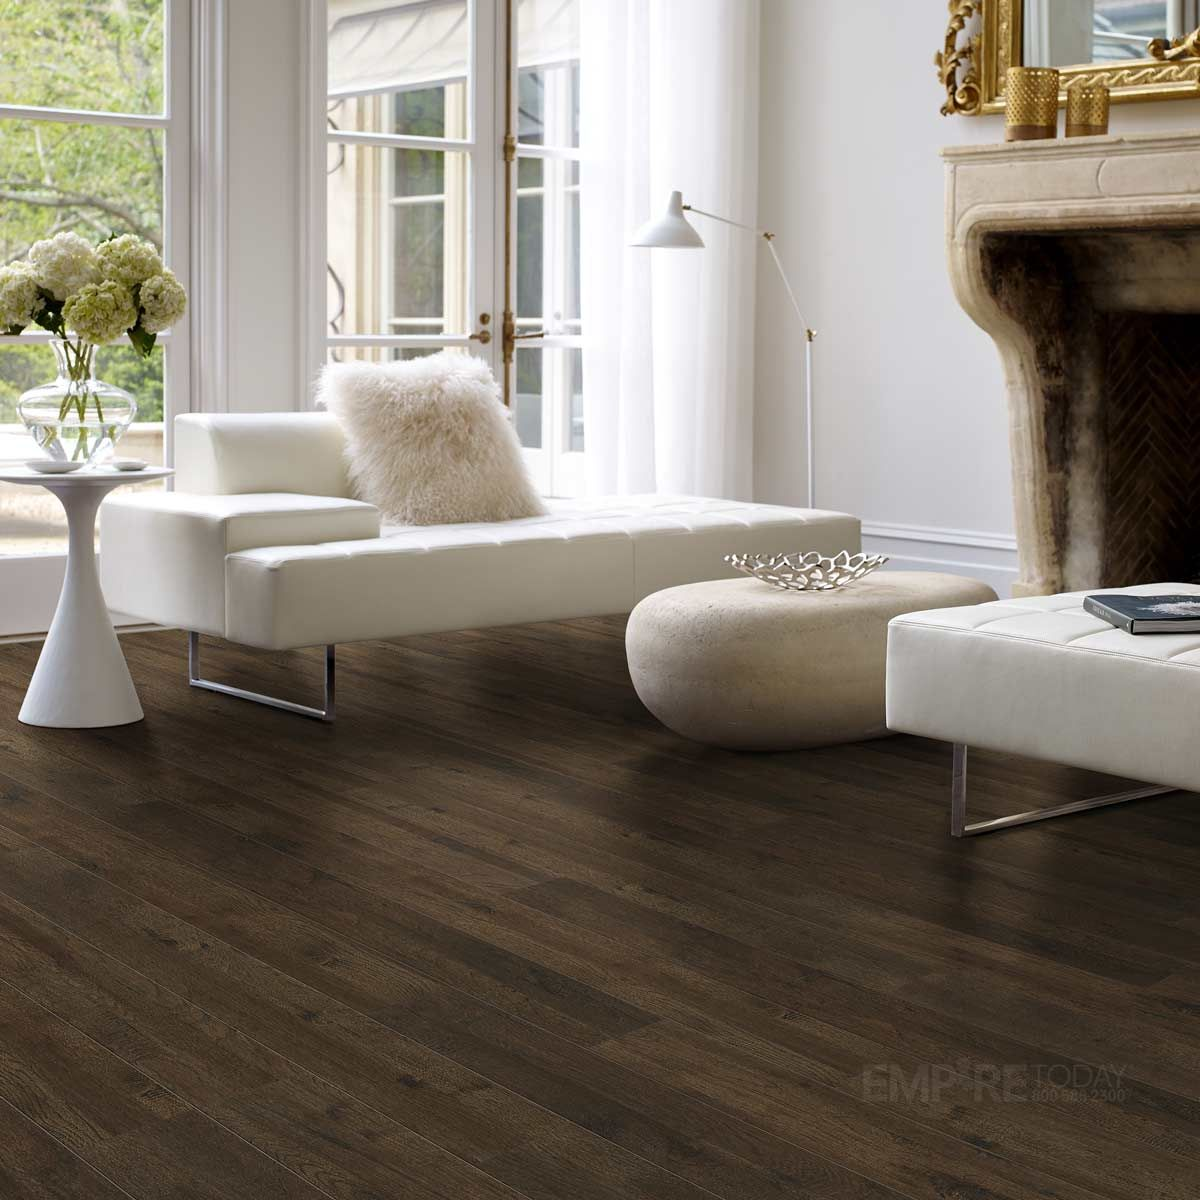 Get a realistic woodlook with durability with Empire